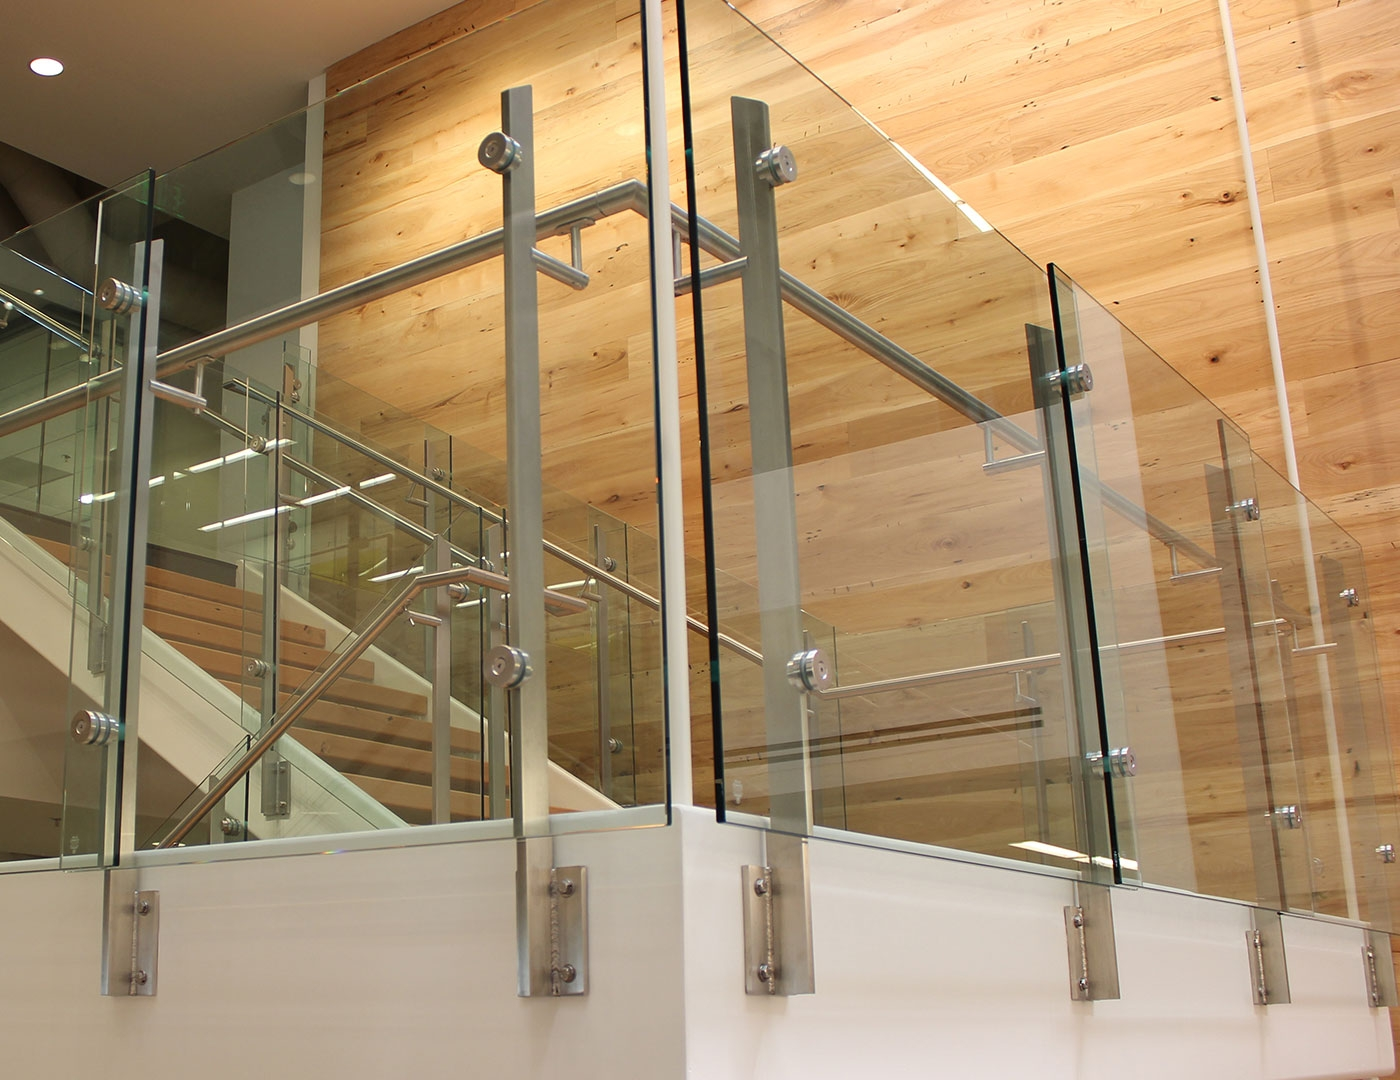 Stainless Steel With Glass Railing Price Modern Trex   Stainless Steel Staircase Railing Price   Interior   Outdoor   Glass   Wooden Railing   Handrail